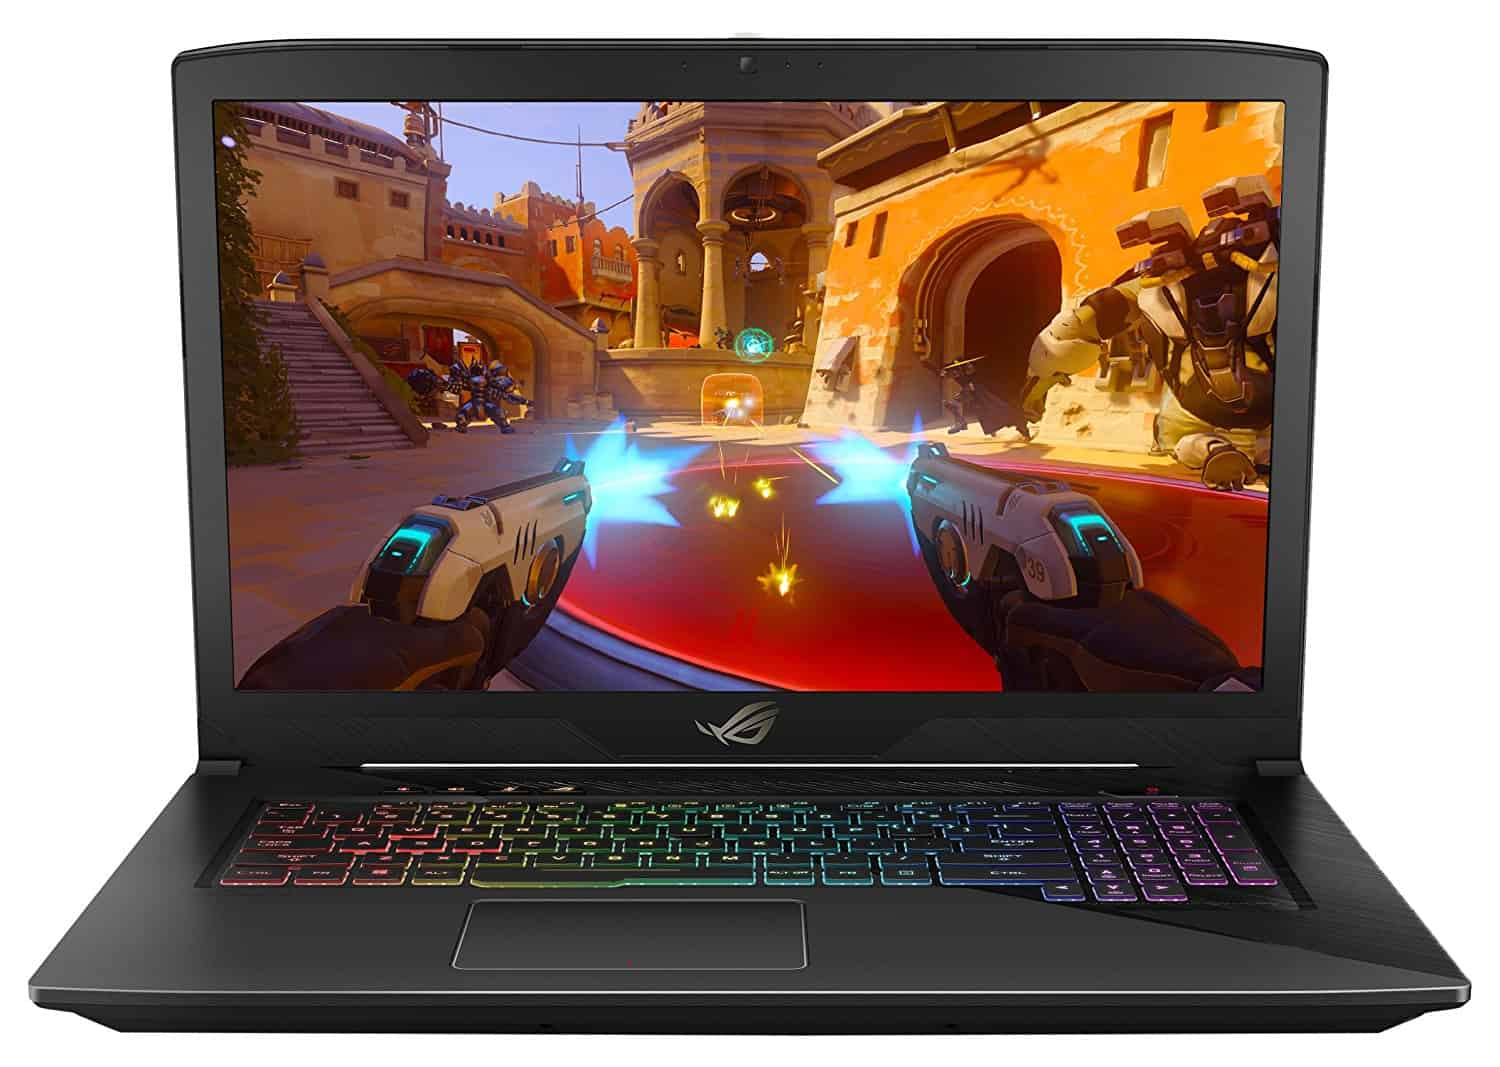 ASUS ROG STRIX GL703VD Review